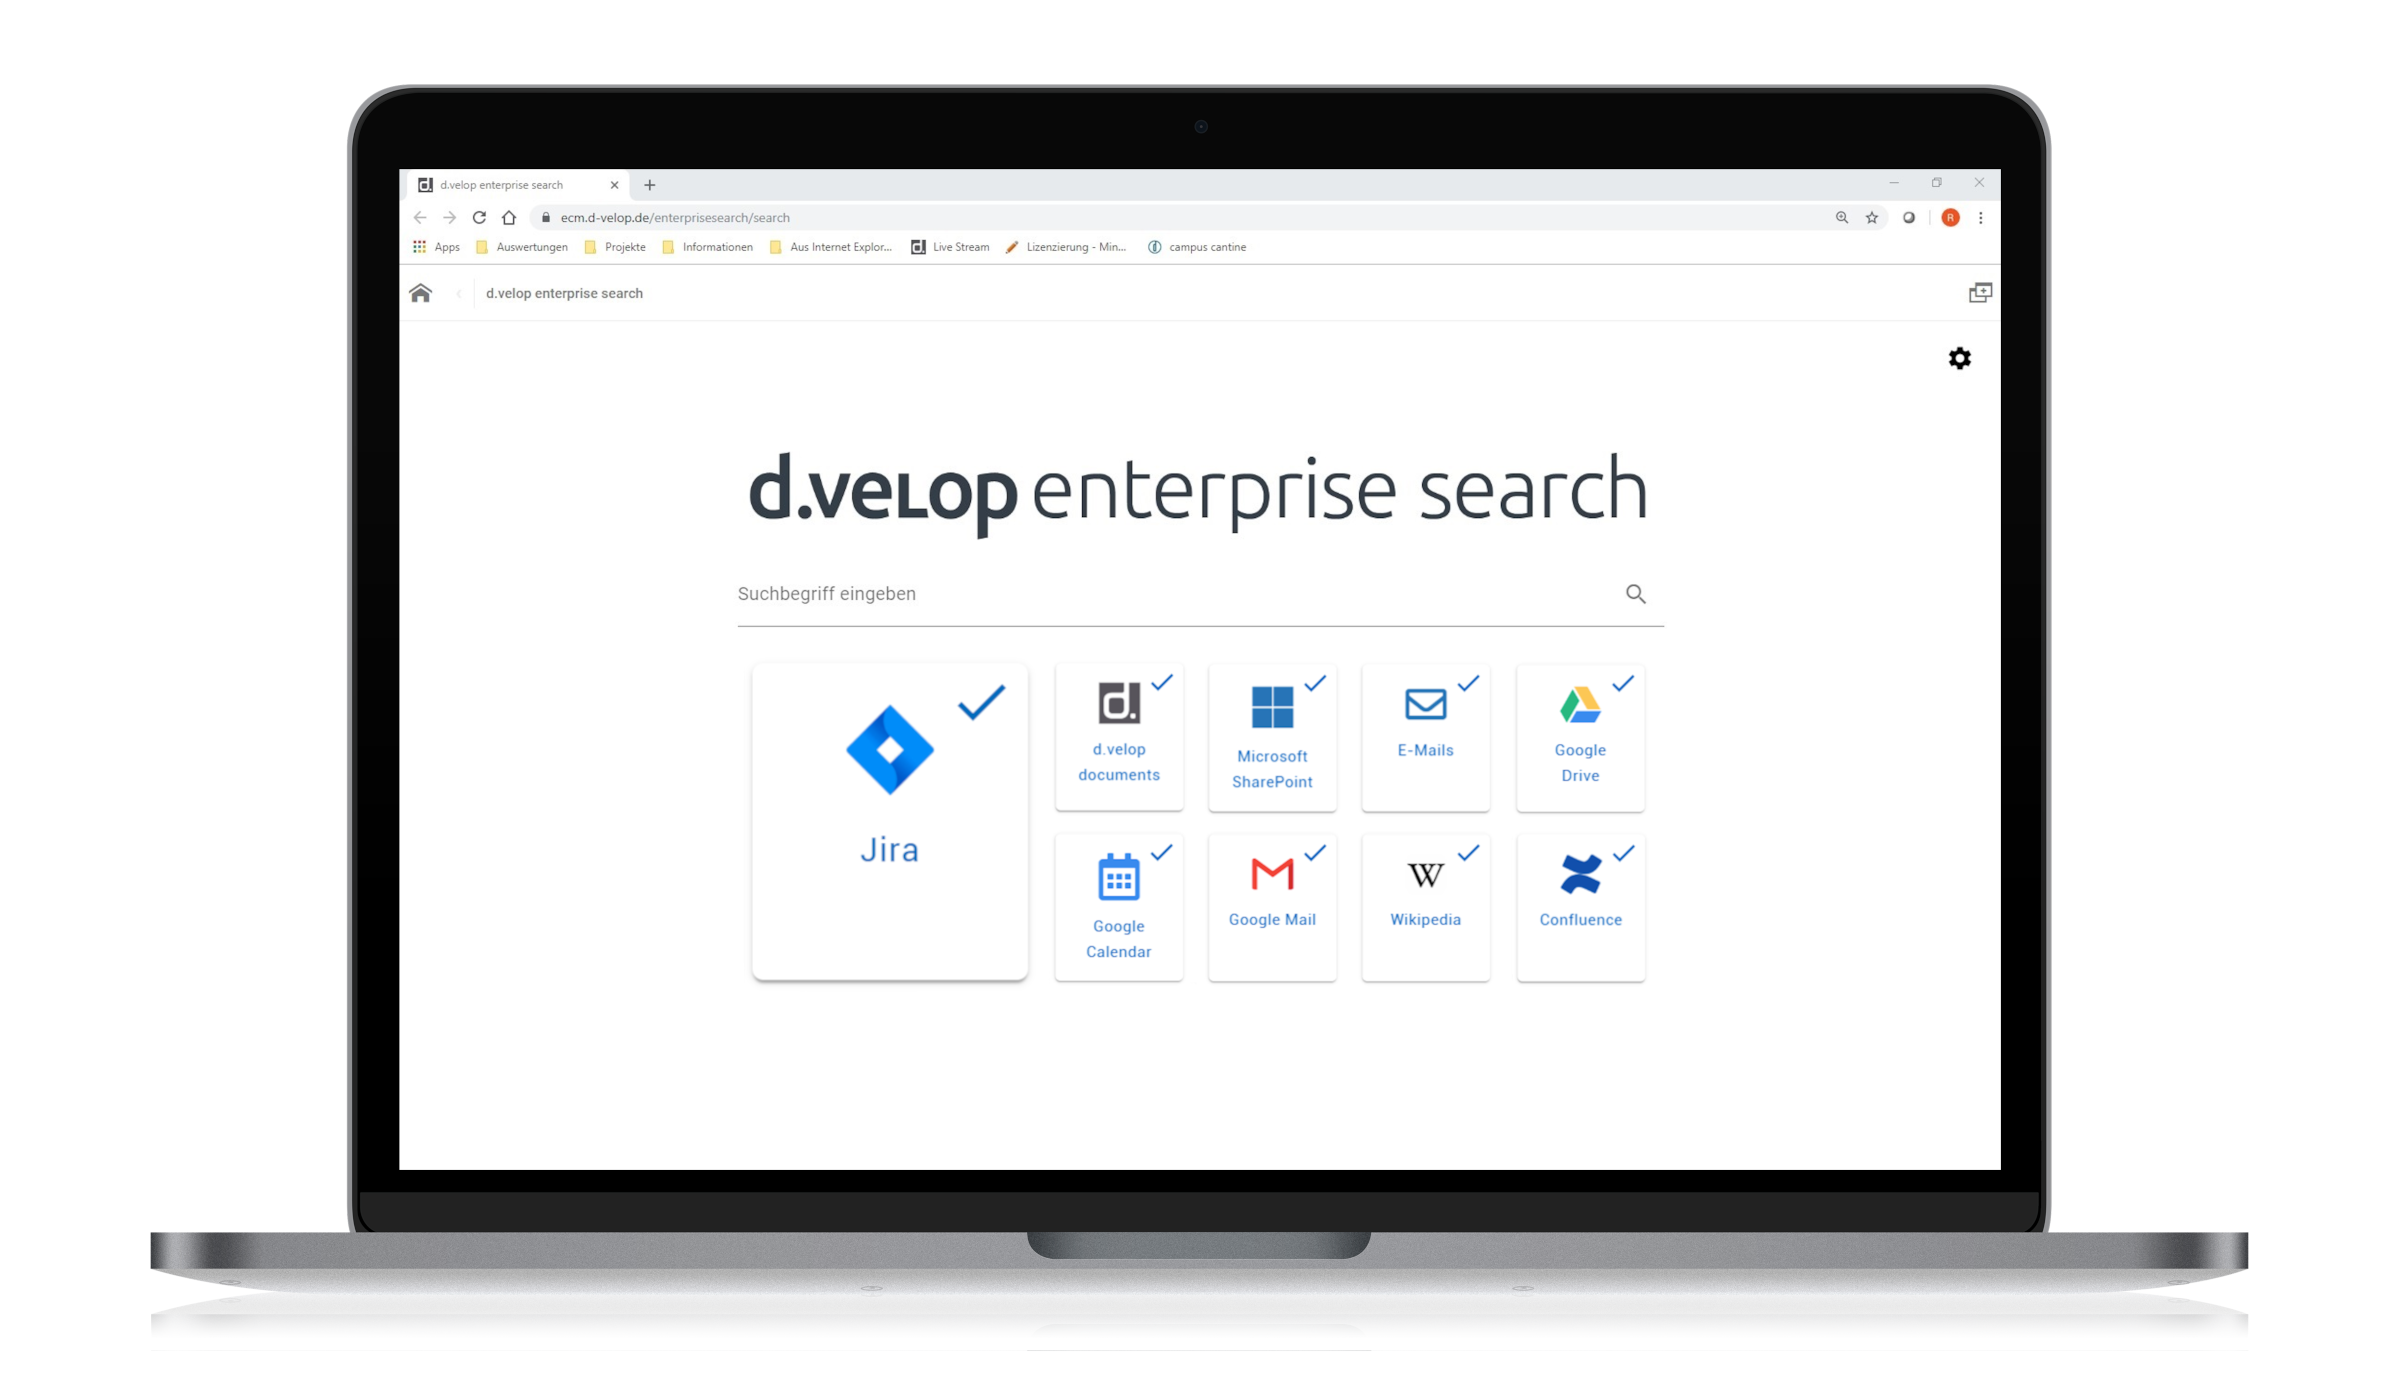 d.velop enterprise search for Atlassian Jira